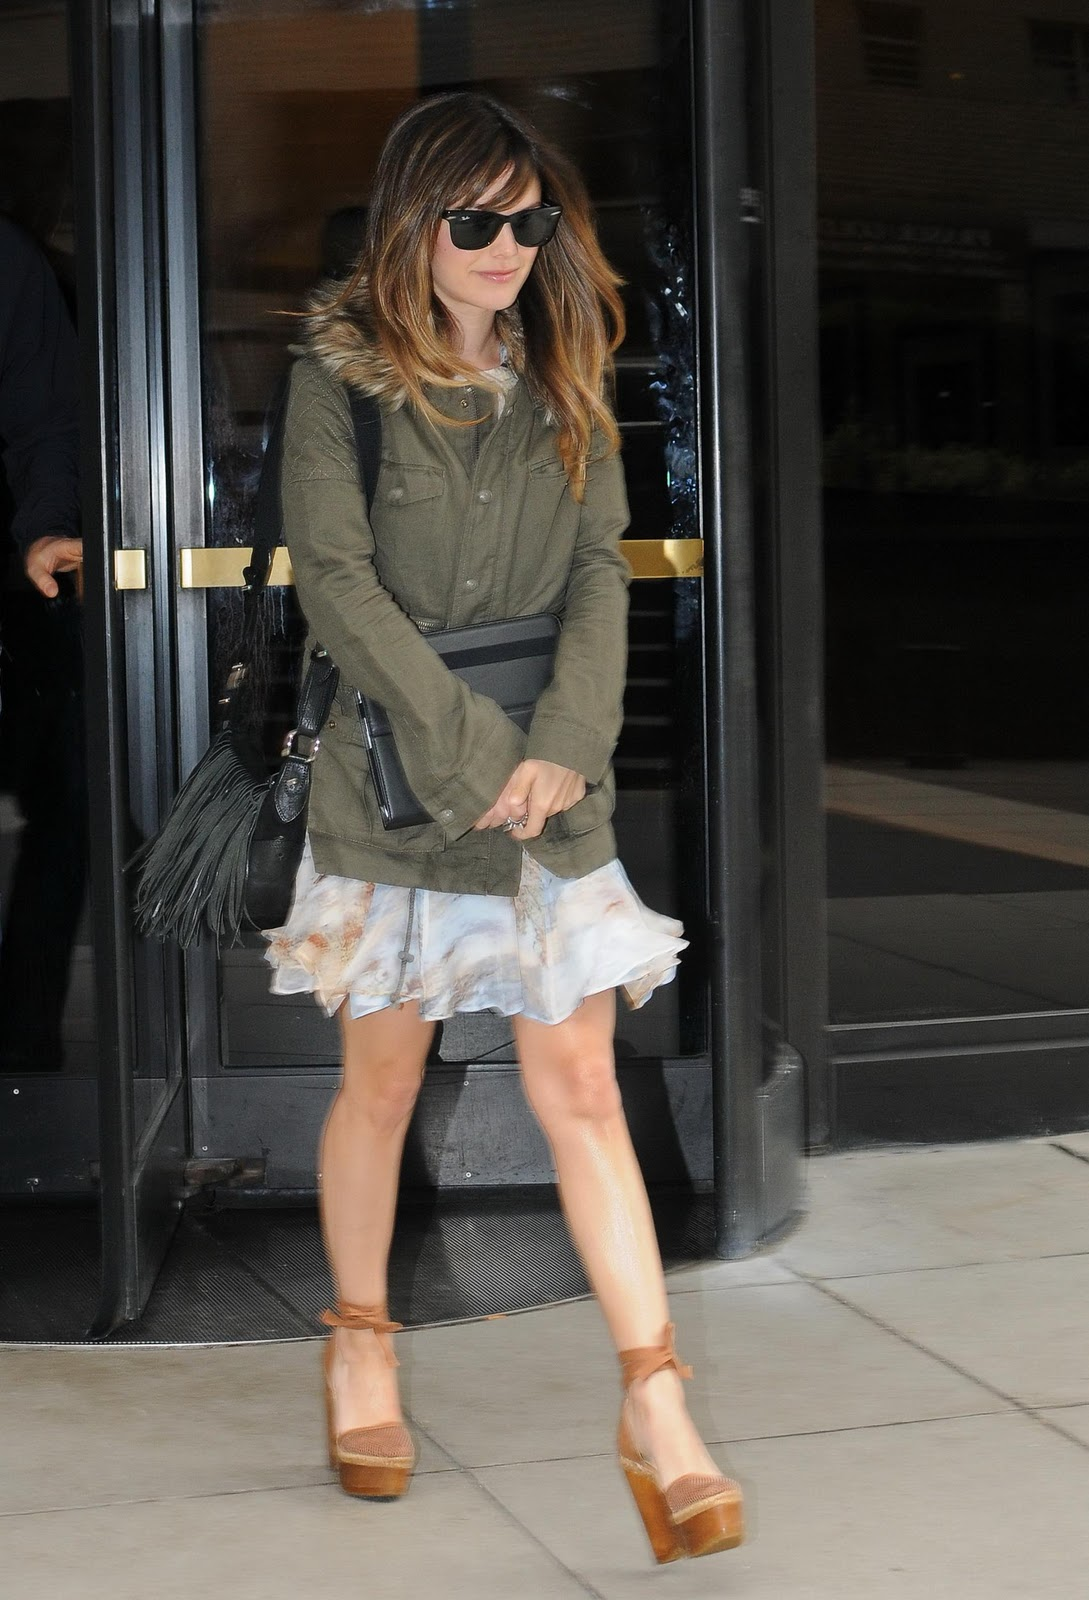 ICloud Rachel Bilson naked (85 foto and video), Pussy, Paparazzi, Instagram, cleavage 2019